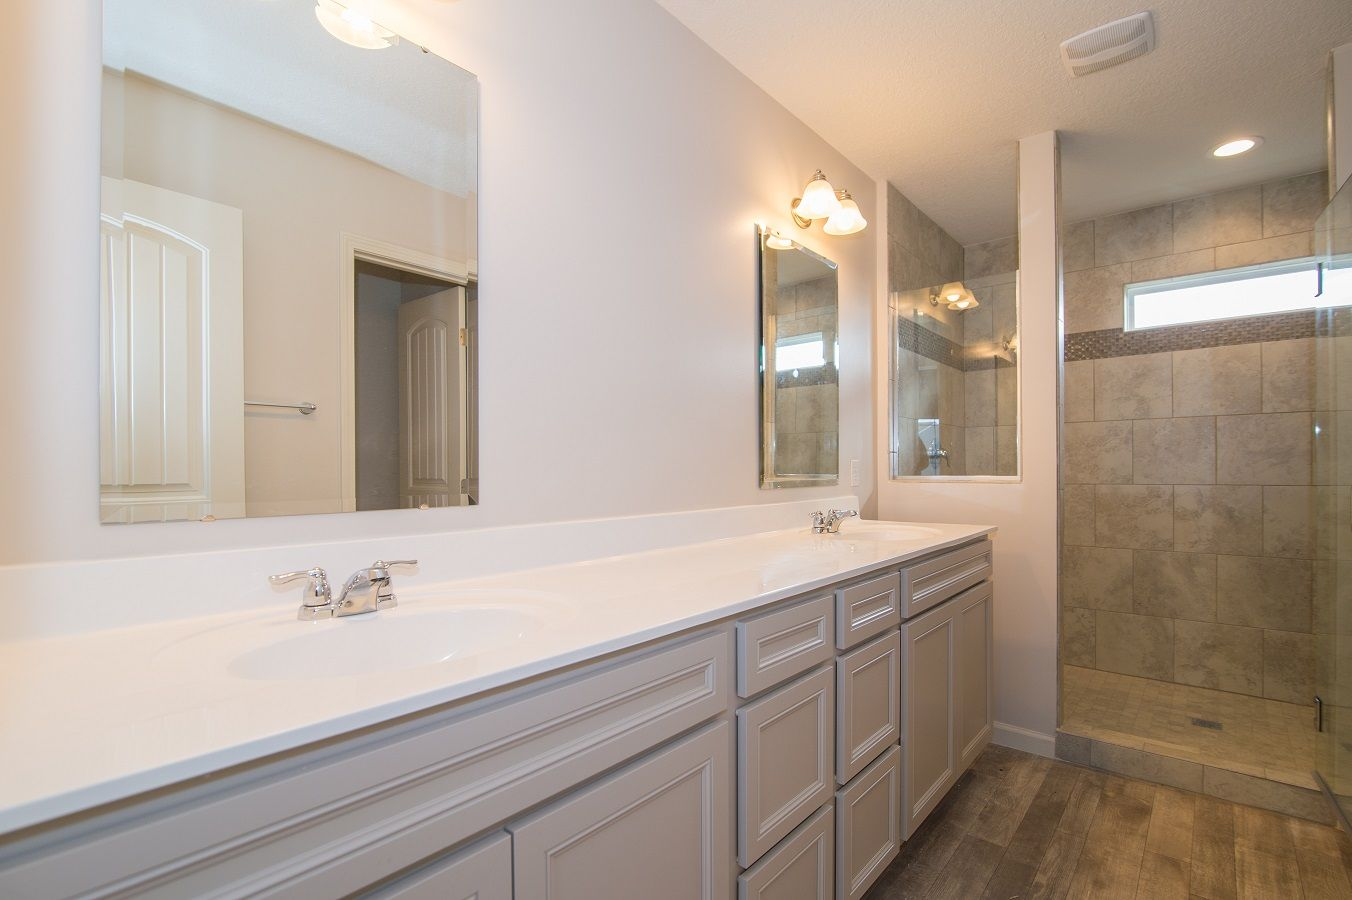 Bathroom featured in the McKinley By D.R. Horton in Fort Wayne, IN